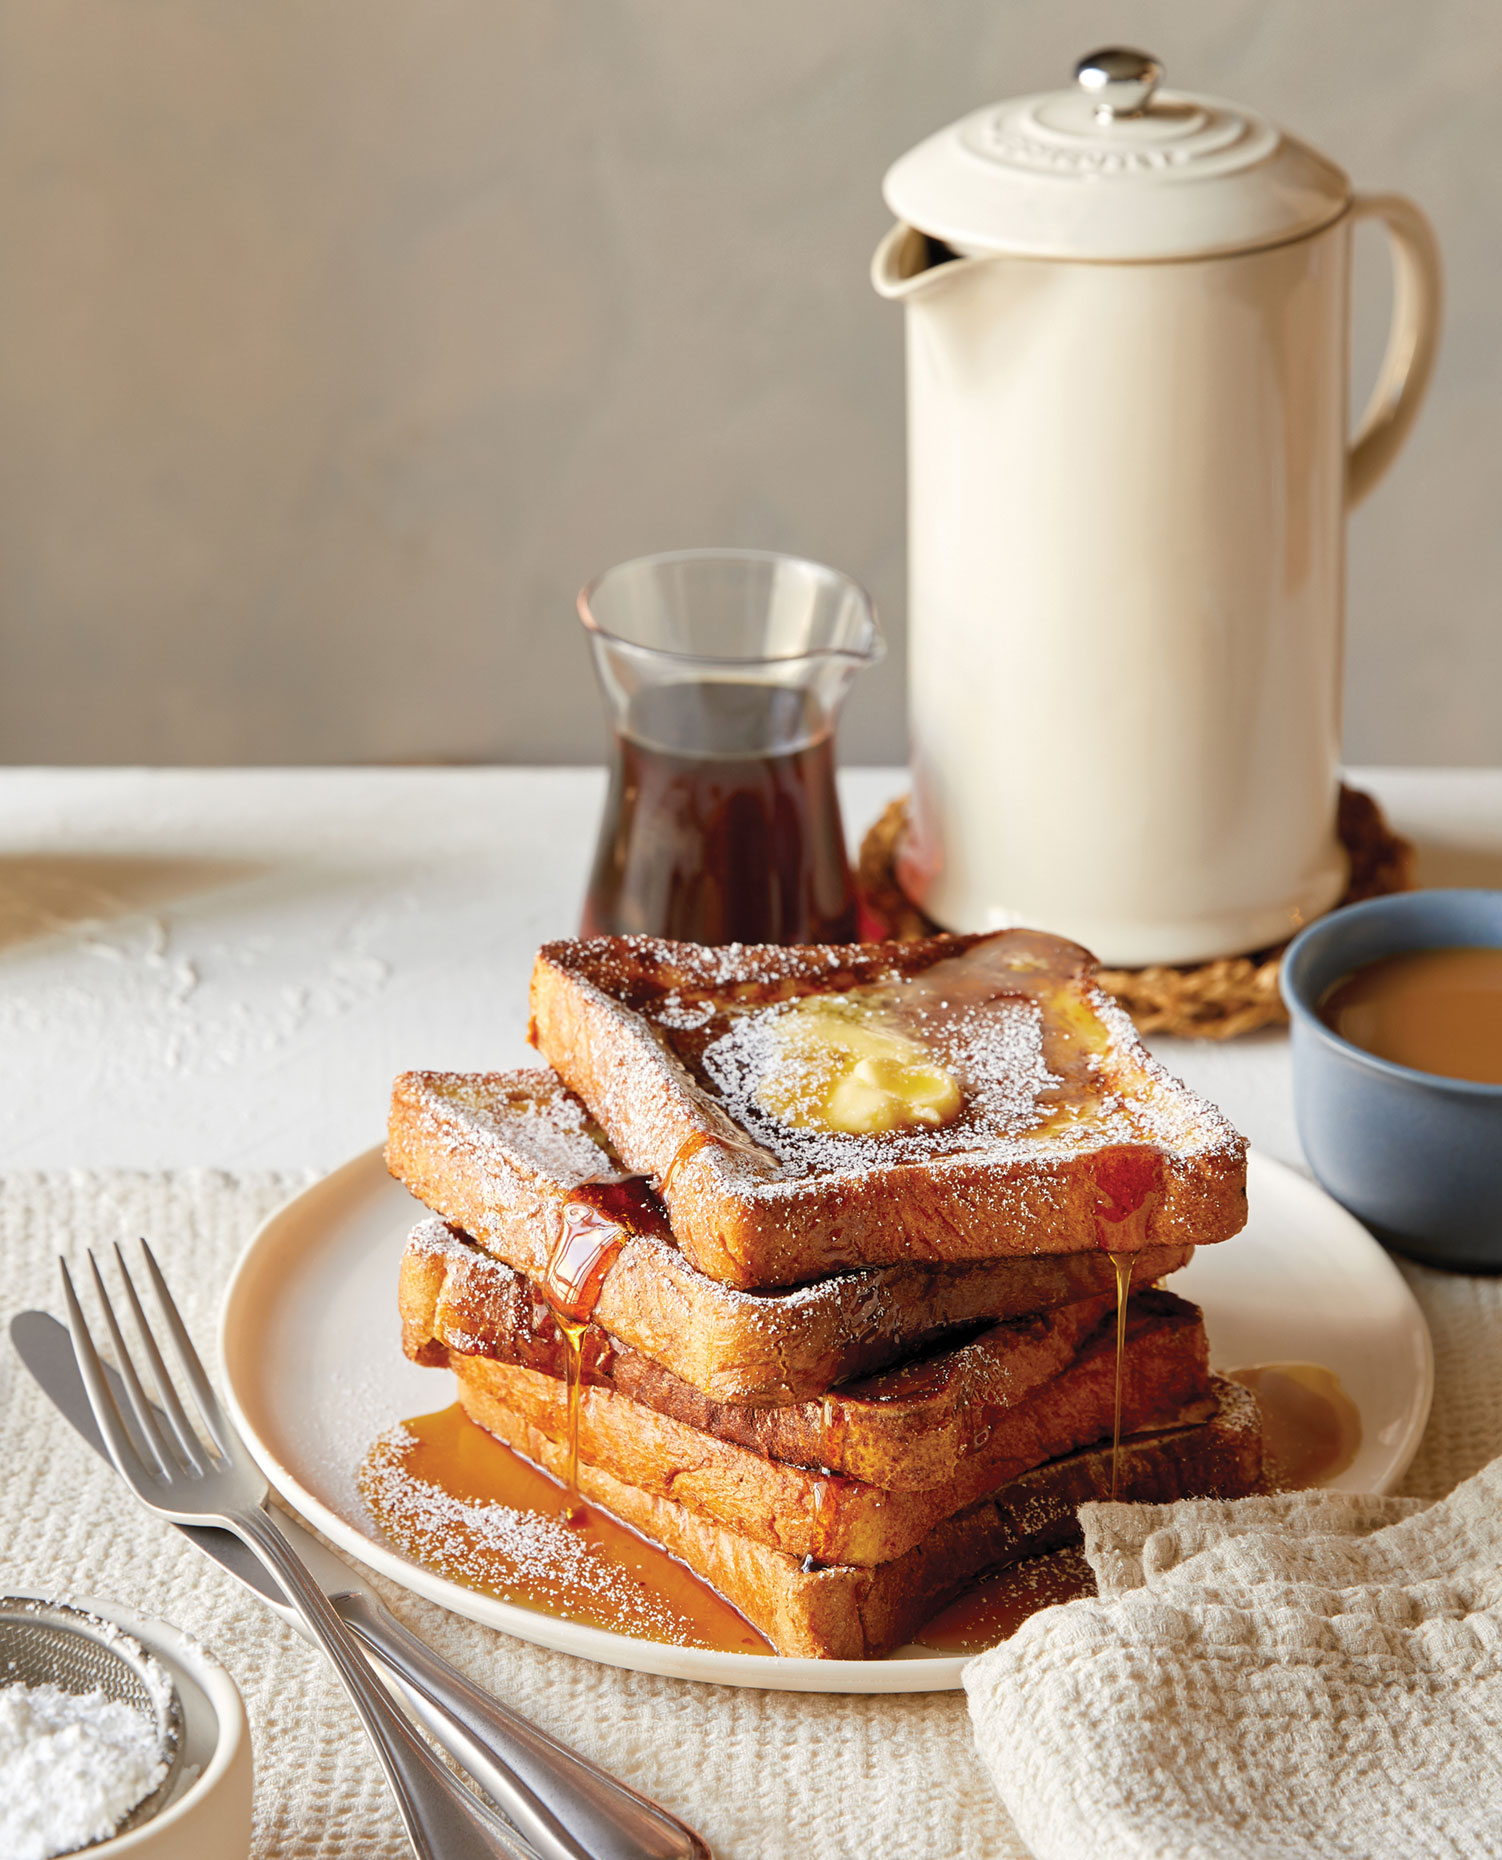 French Toast with Syrup by a Los Angeles Food Photographer